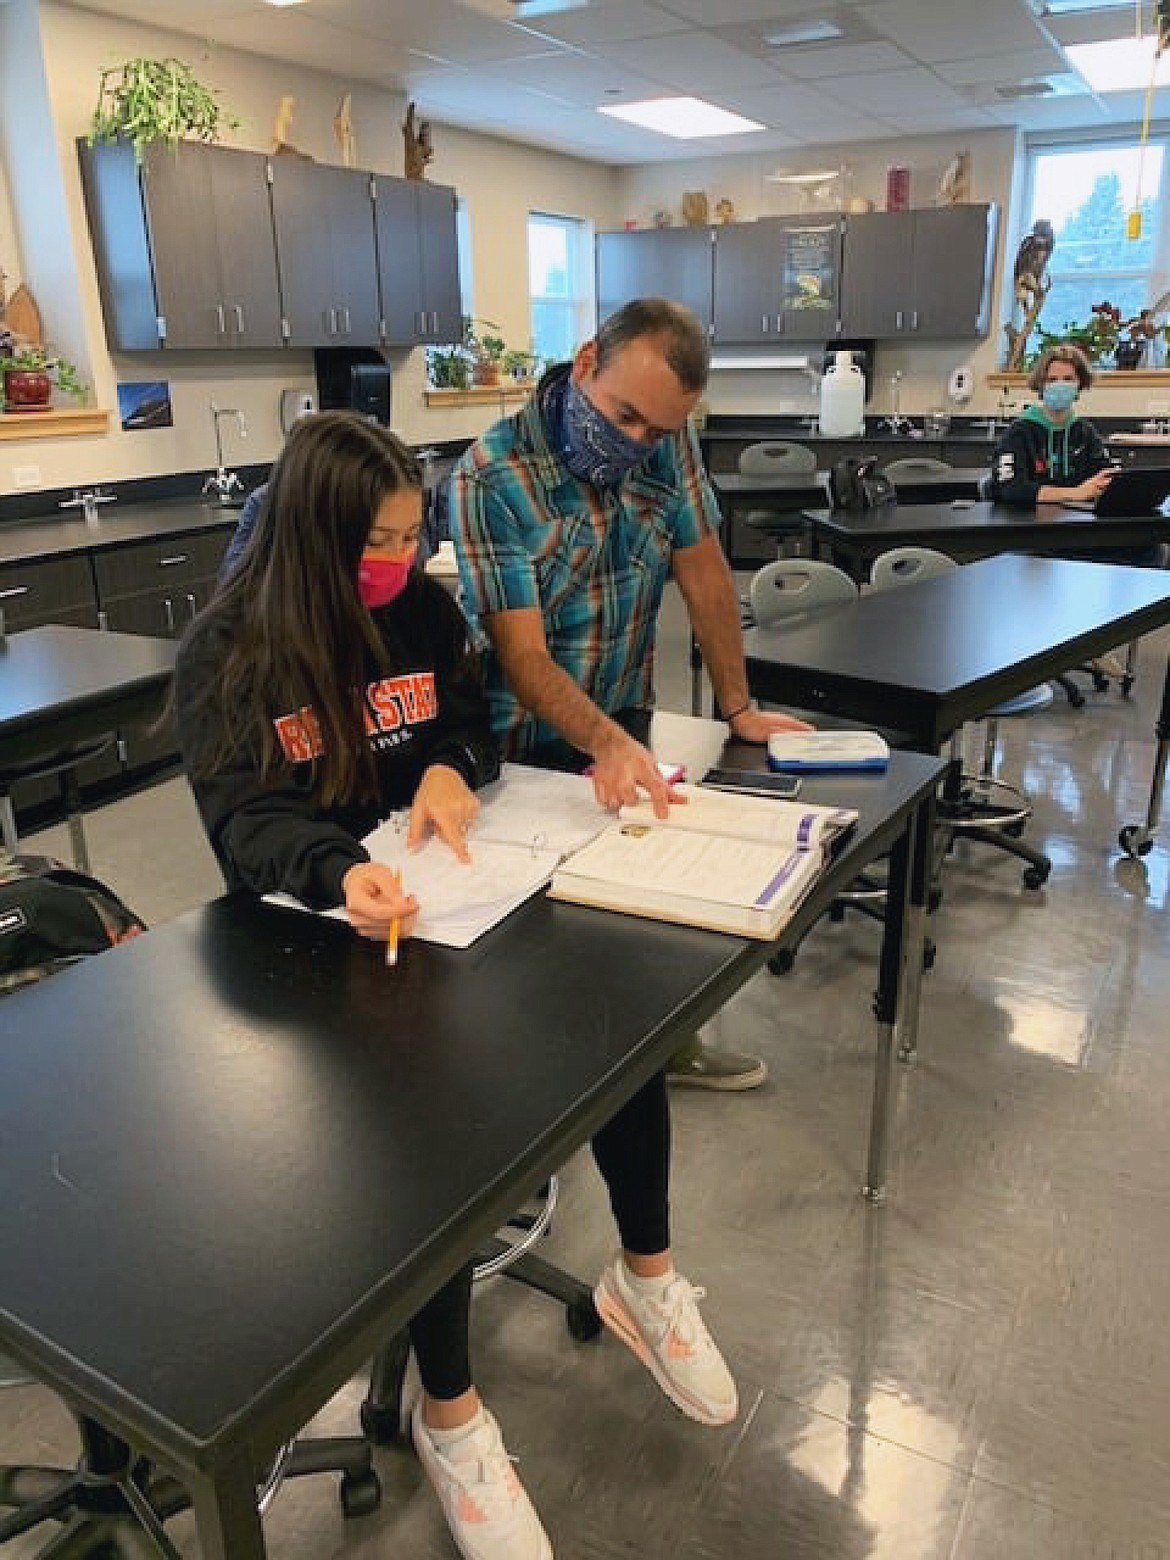 Whitefish High School sophomore Ava Mendoza works on geometry with her math teacher Damian Estrada on a recent Wednesday at the high school. (Photo courtesy of Whitefish School District)